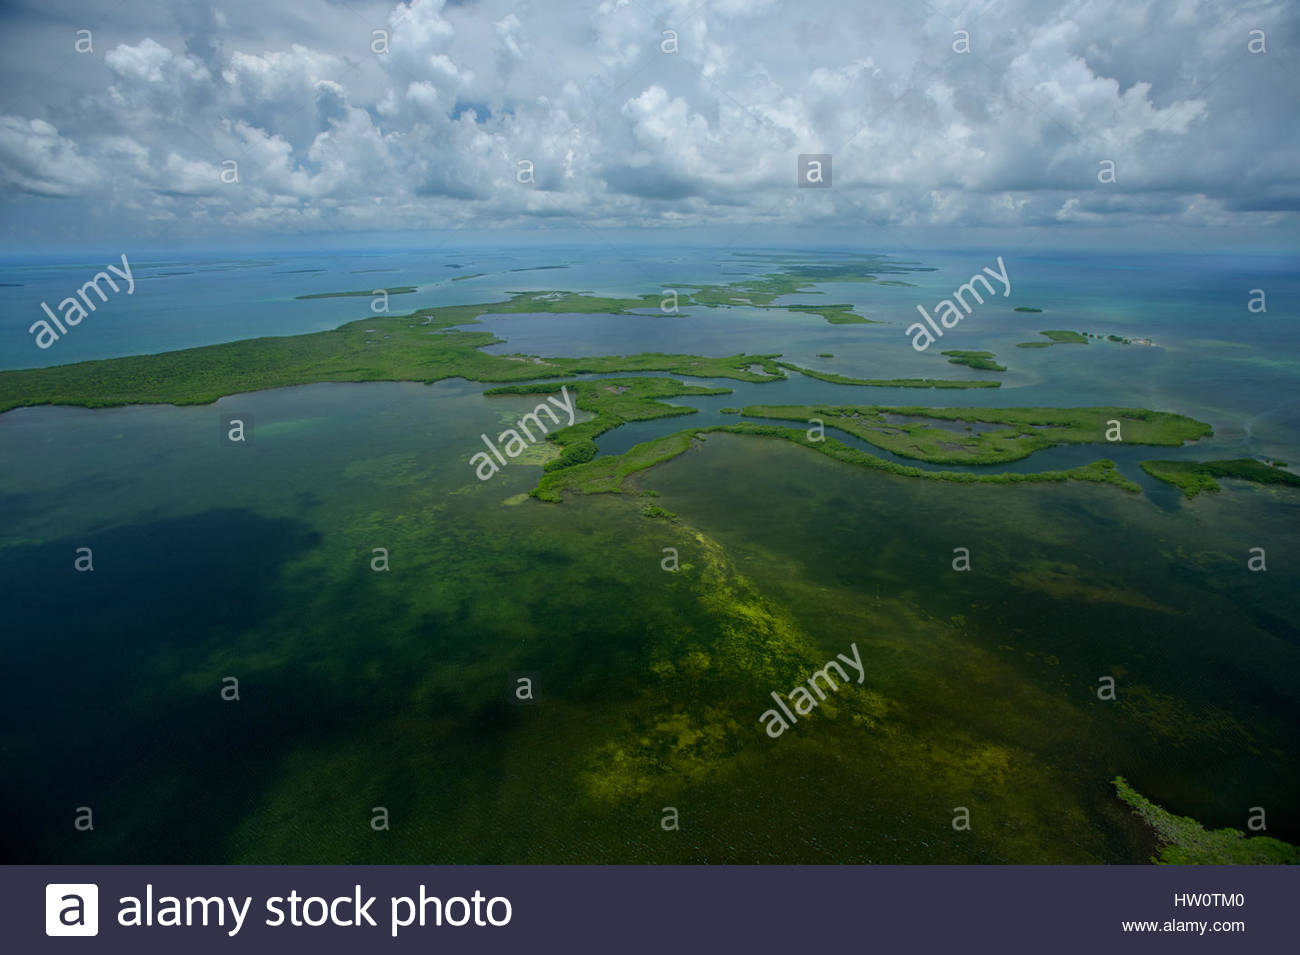 Turneffe Atoll, 30 miles long and 10 miles wide, is one of three atolls off Belize in the middle of the 160-mile - Stock Image